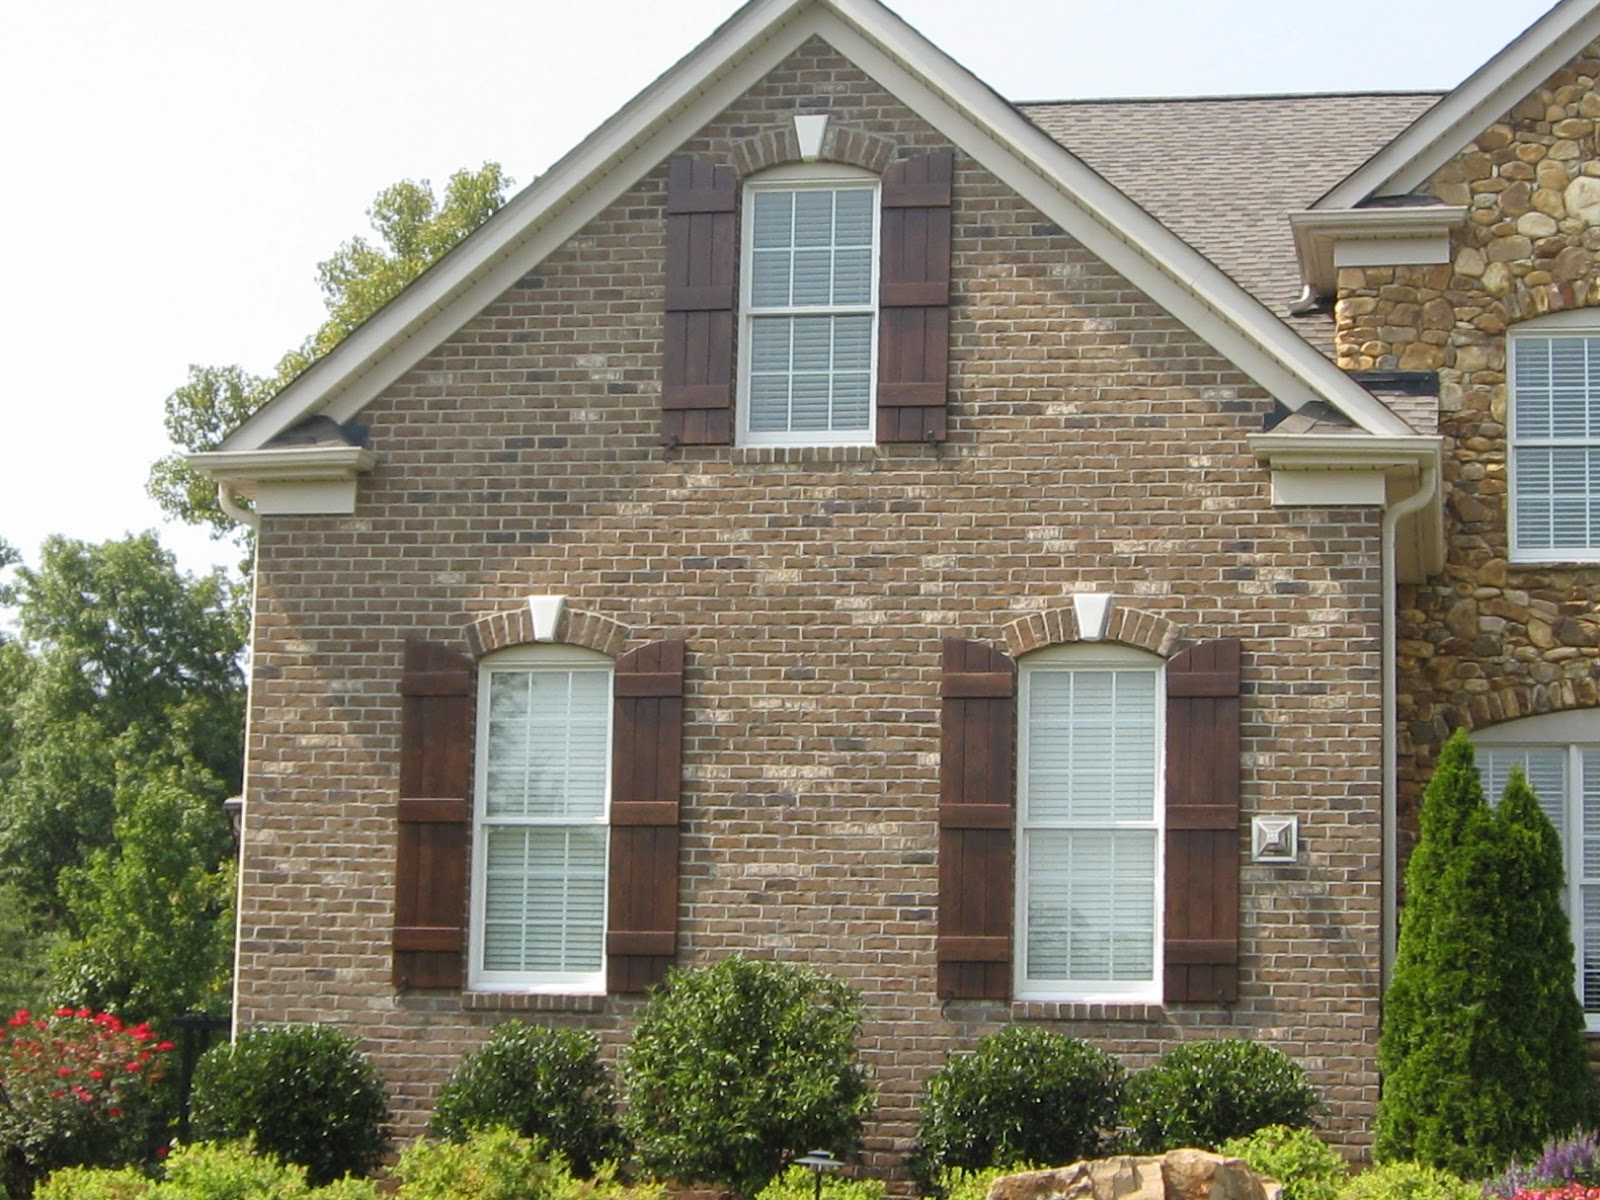 Exterior Shutters: Transform Your Home's Exterior Affordably With Custom